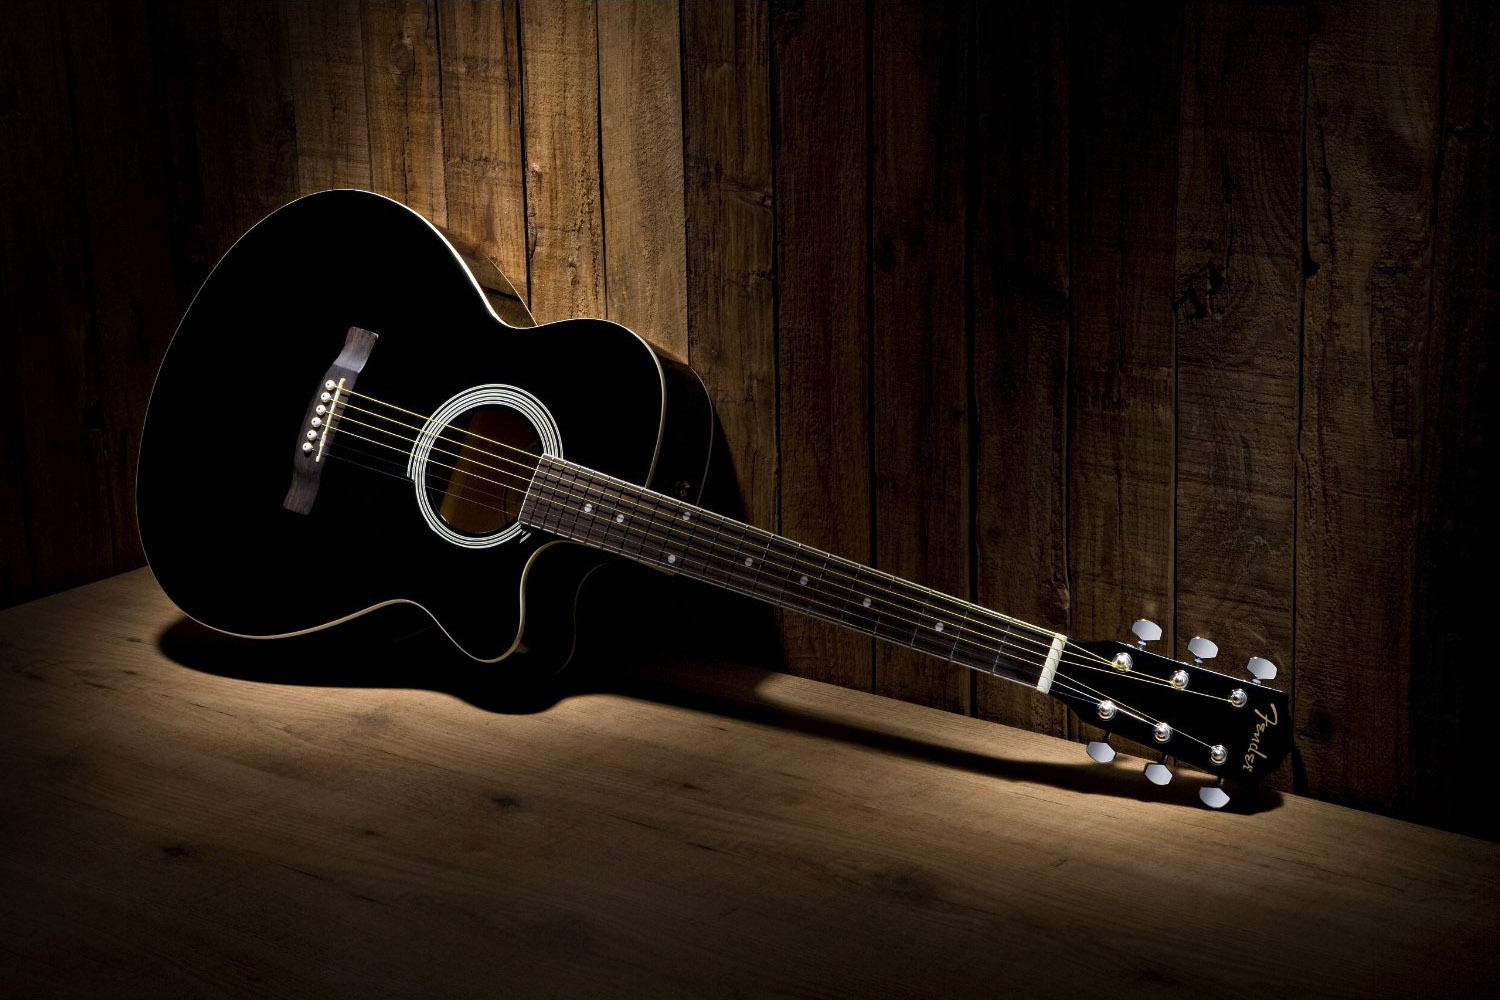 Guitar Wallpaper   Black and White Fender FA 130 Acoustic Guitar